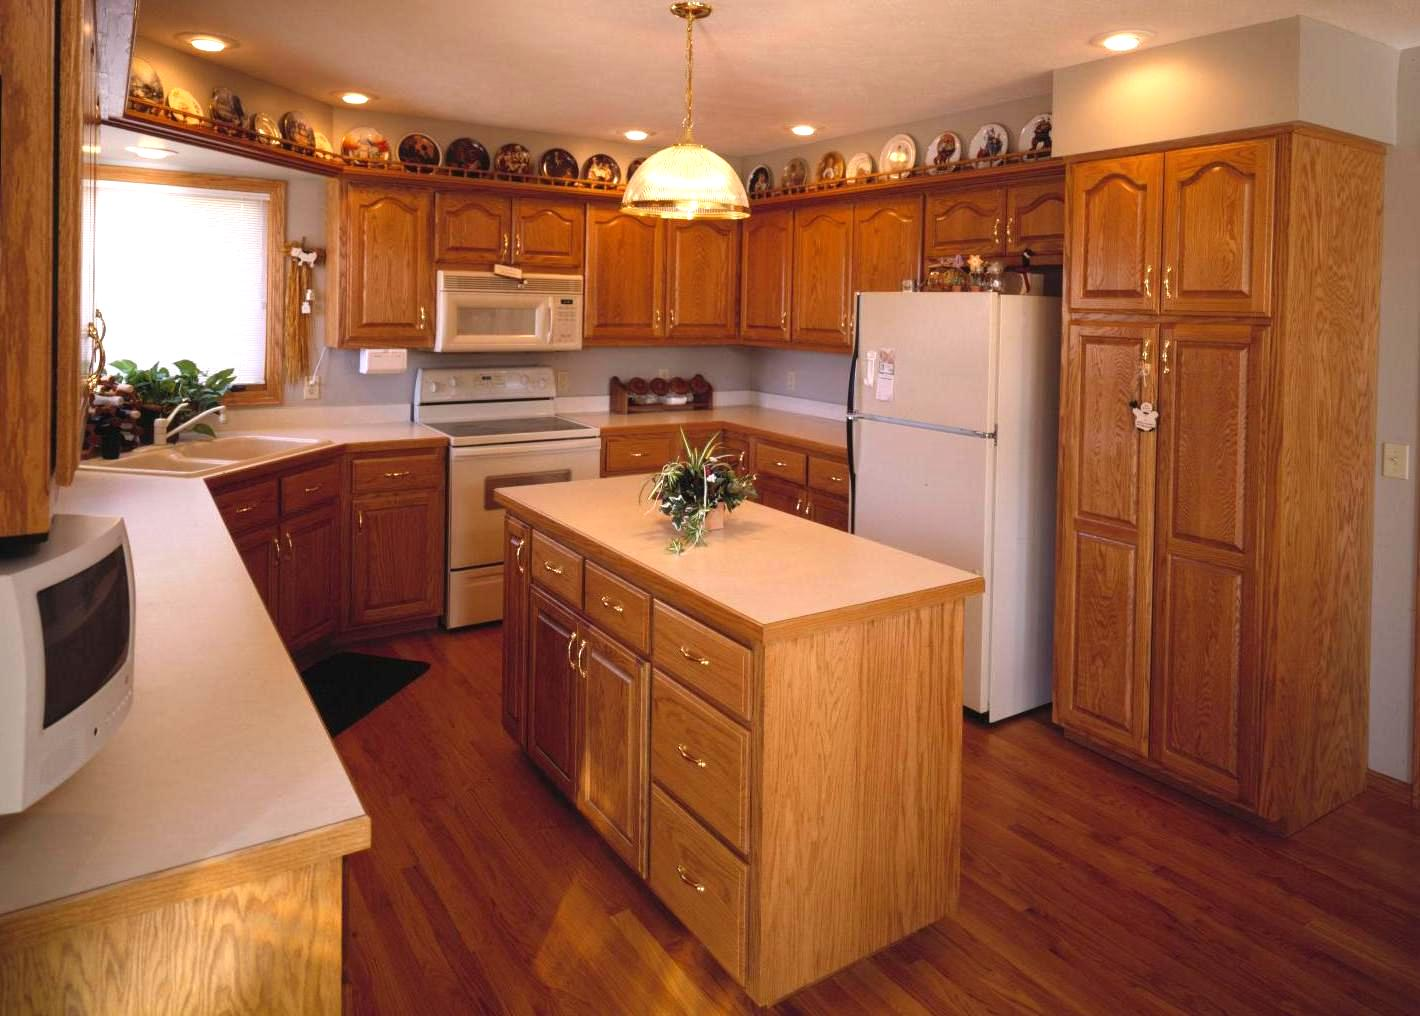 Randys 39 custom kitchen cabinets for Cabinetry kitchen cabinets